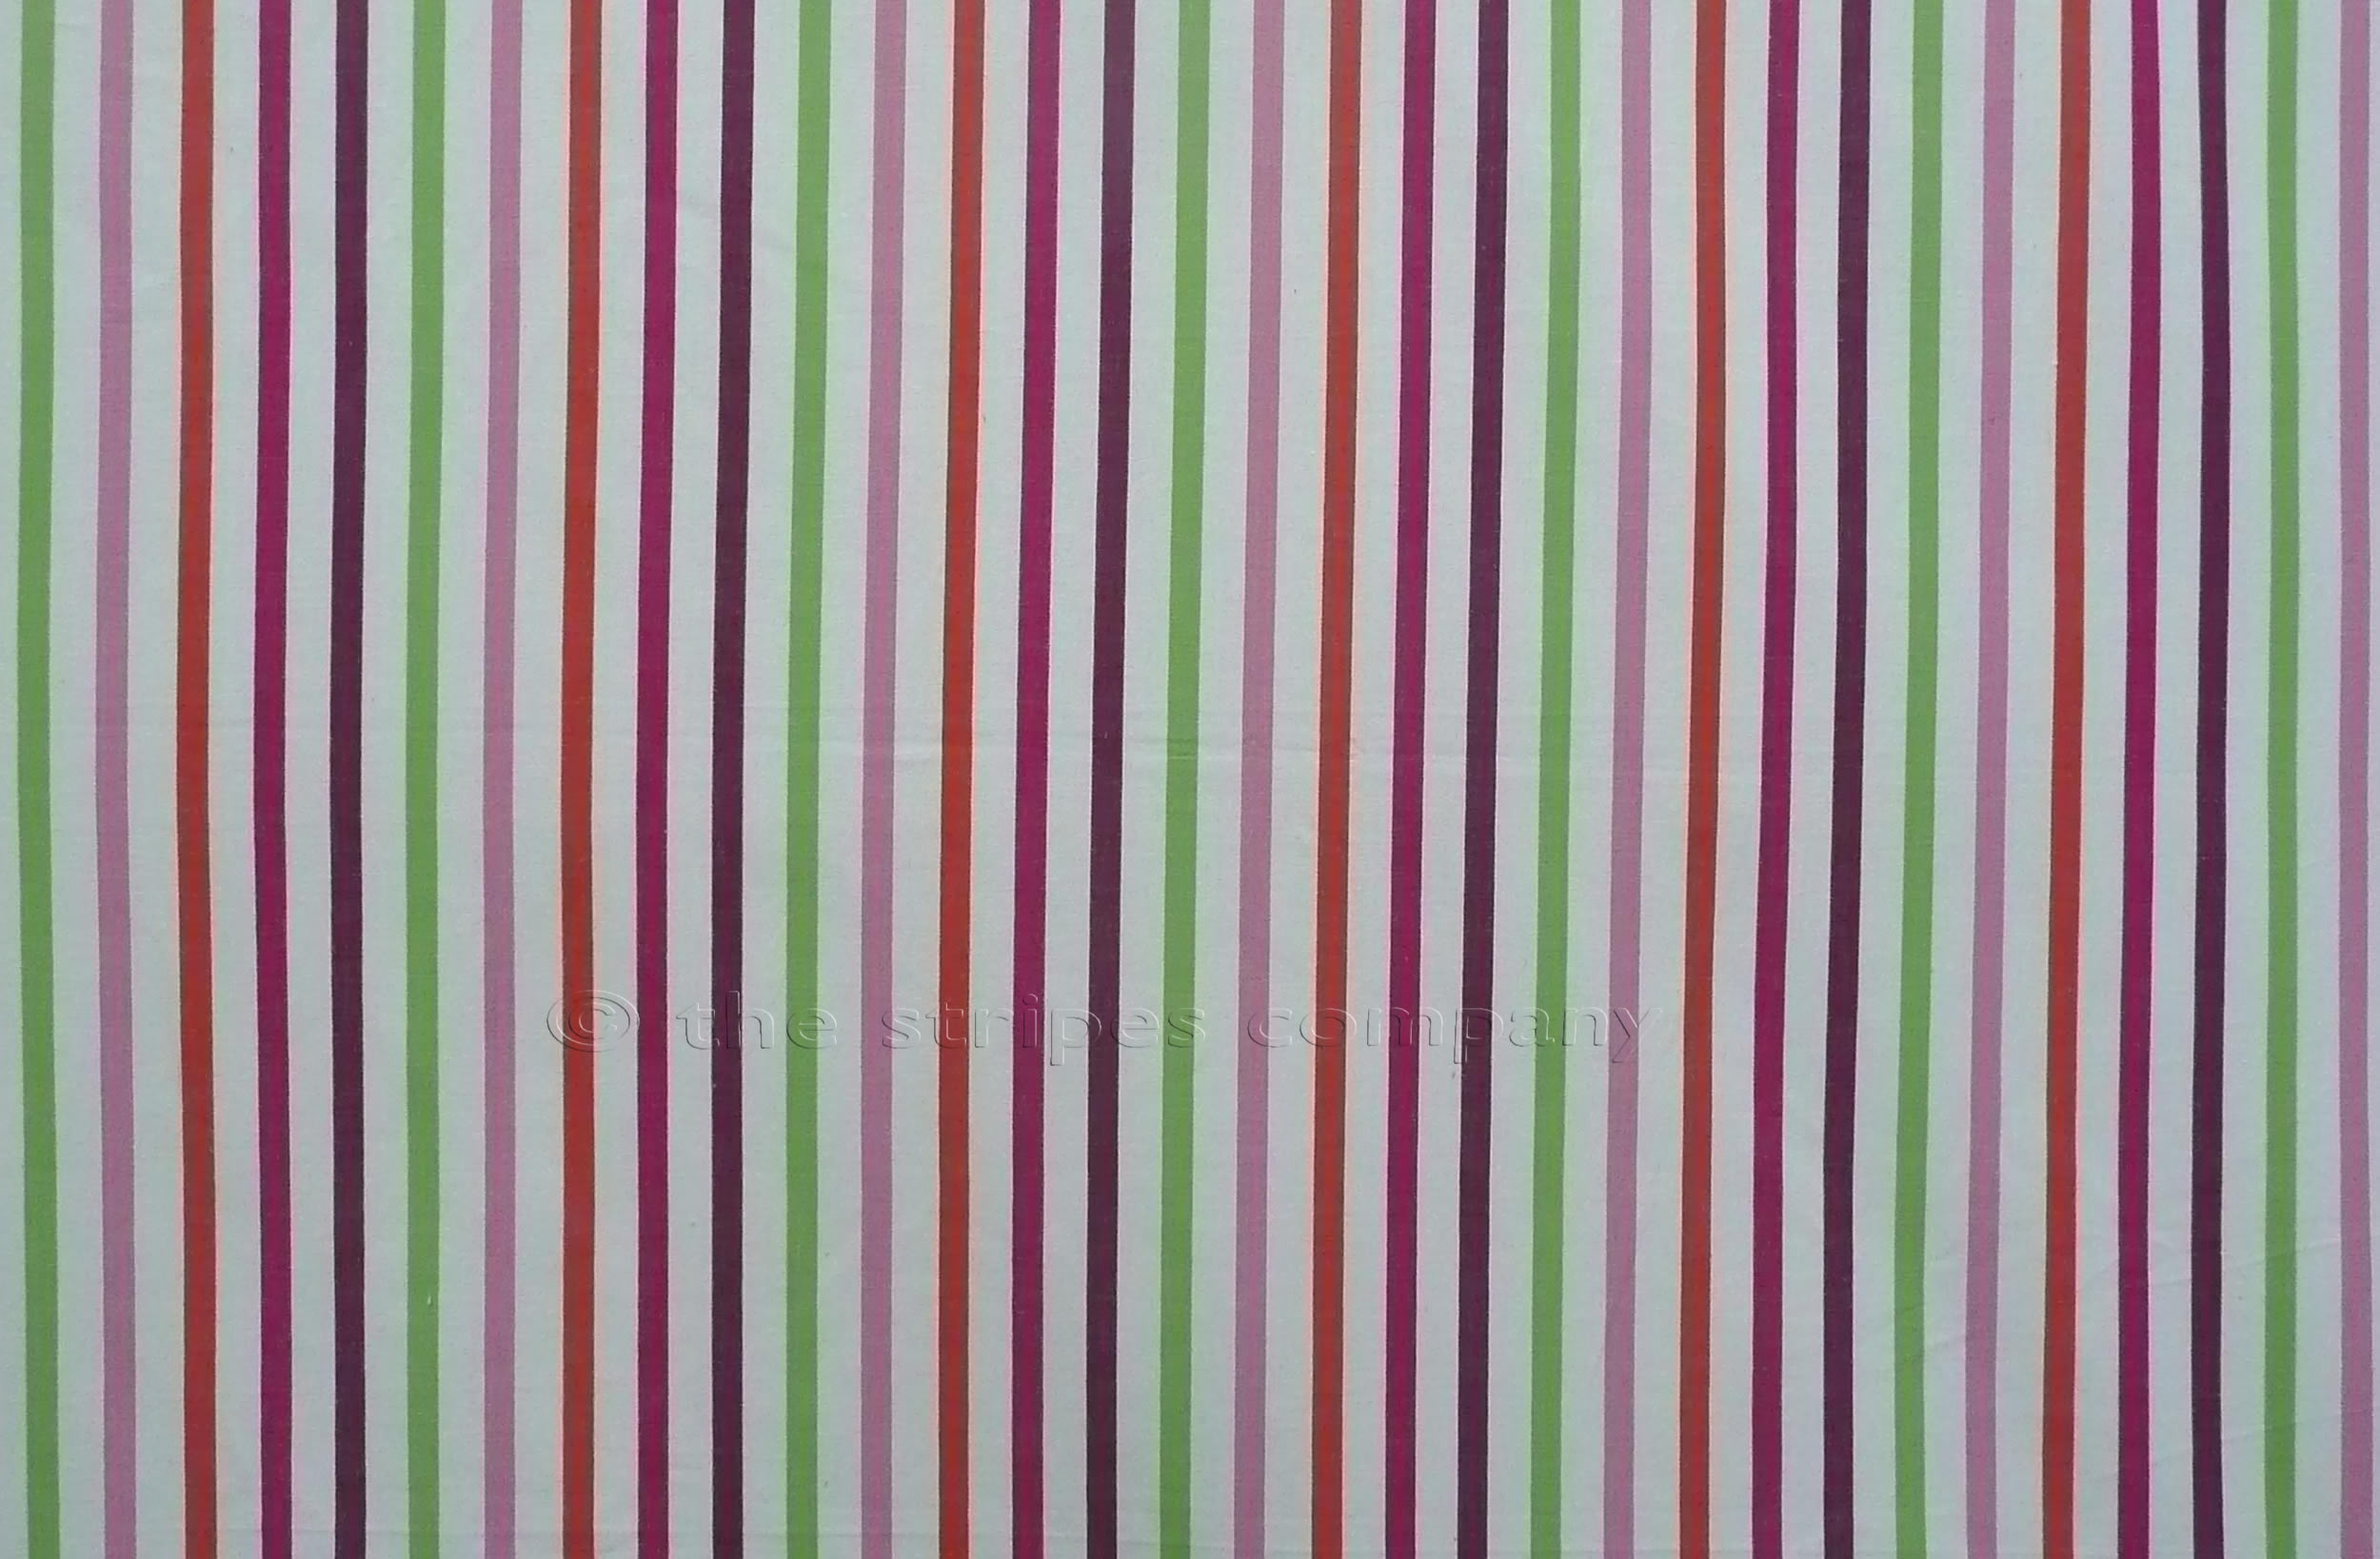 striped fabric white pink purple lime stripes striped curtain fabrics upholstery fabrics